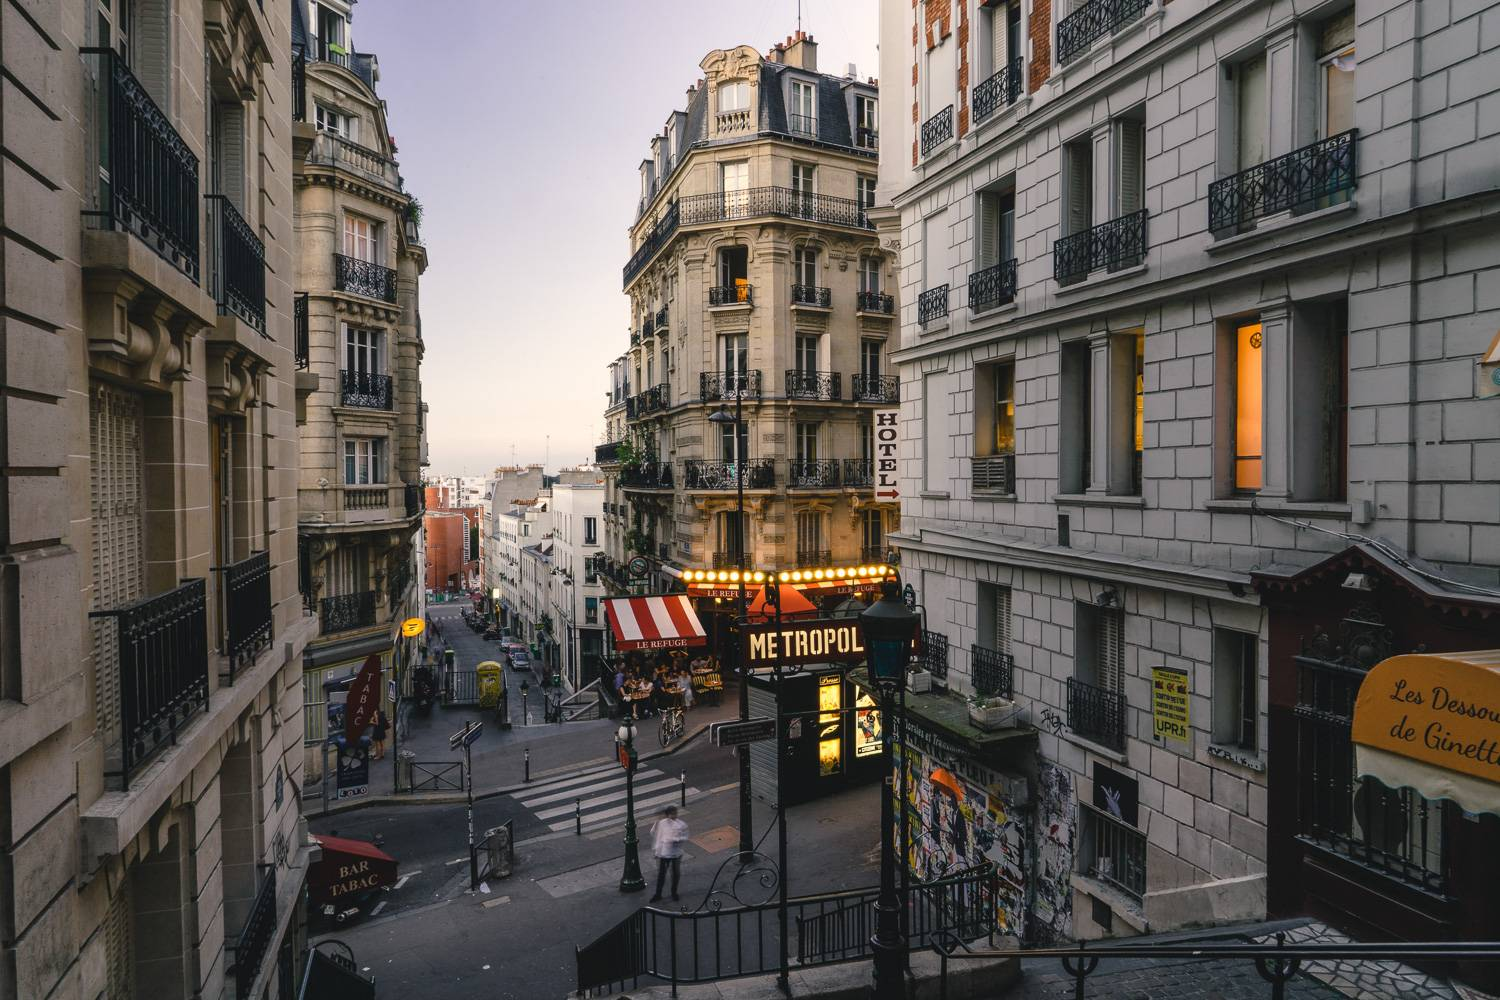 Image of a Paris street from the top of a set of stairs at dusk.